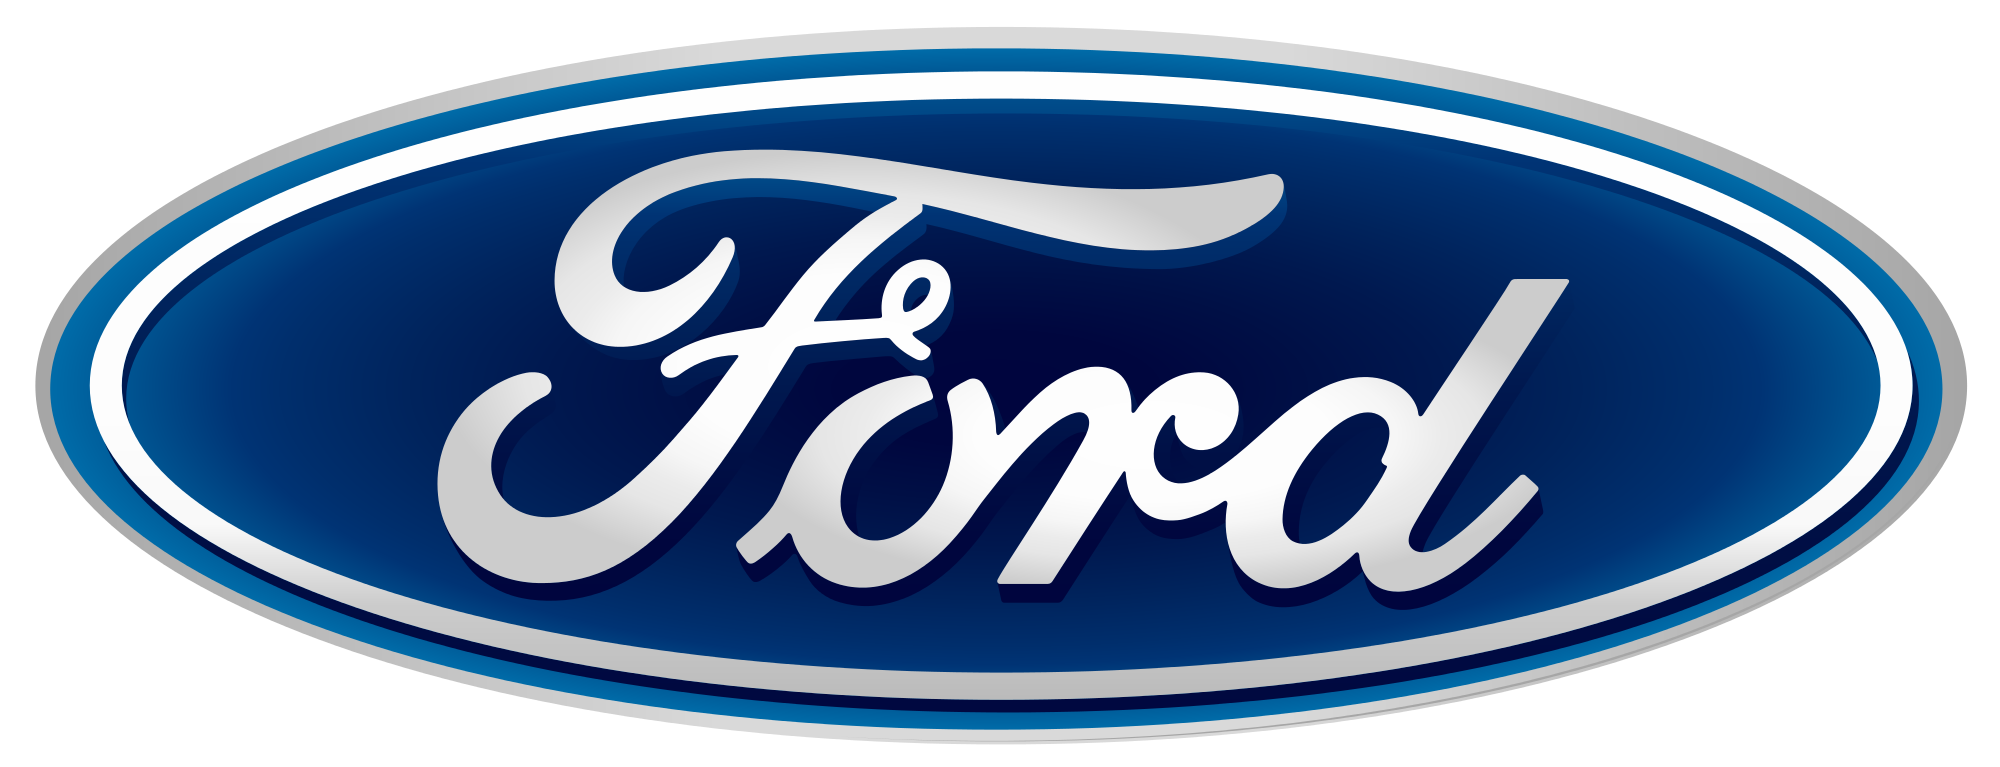 Ford Used Cars in Lubbock, TX